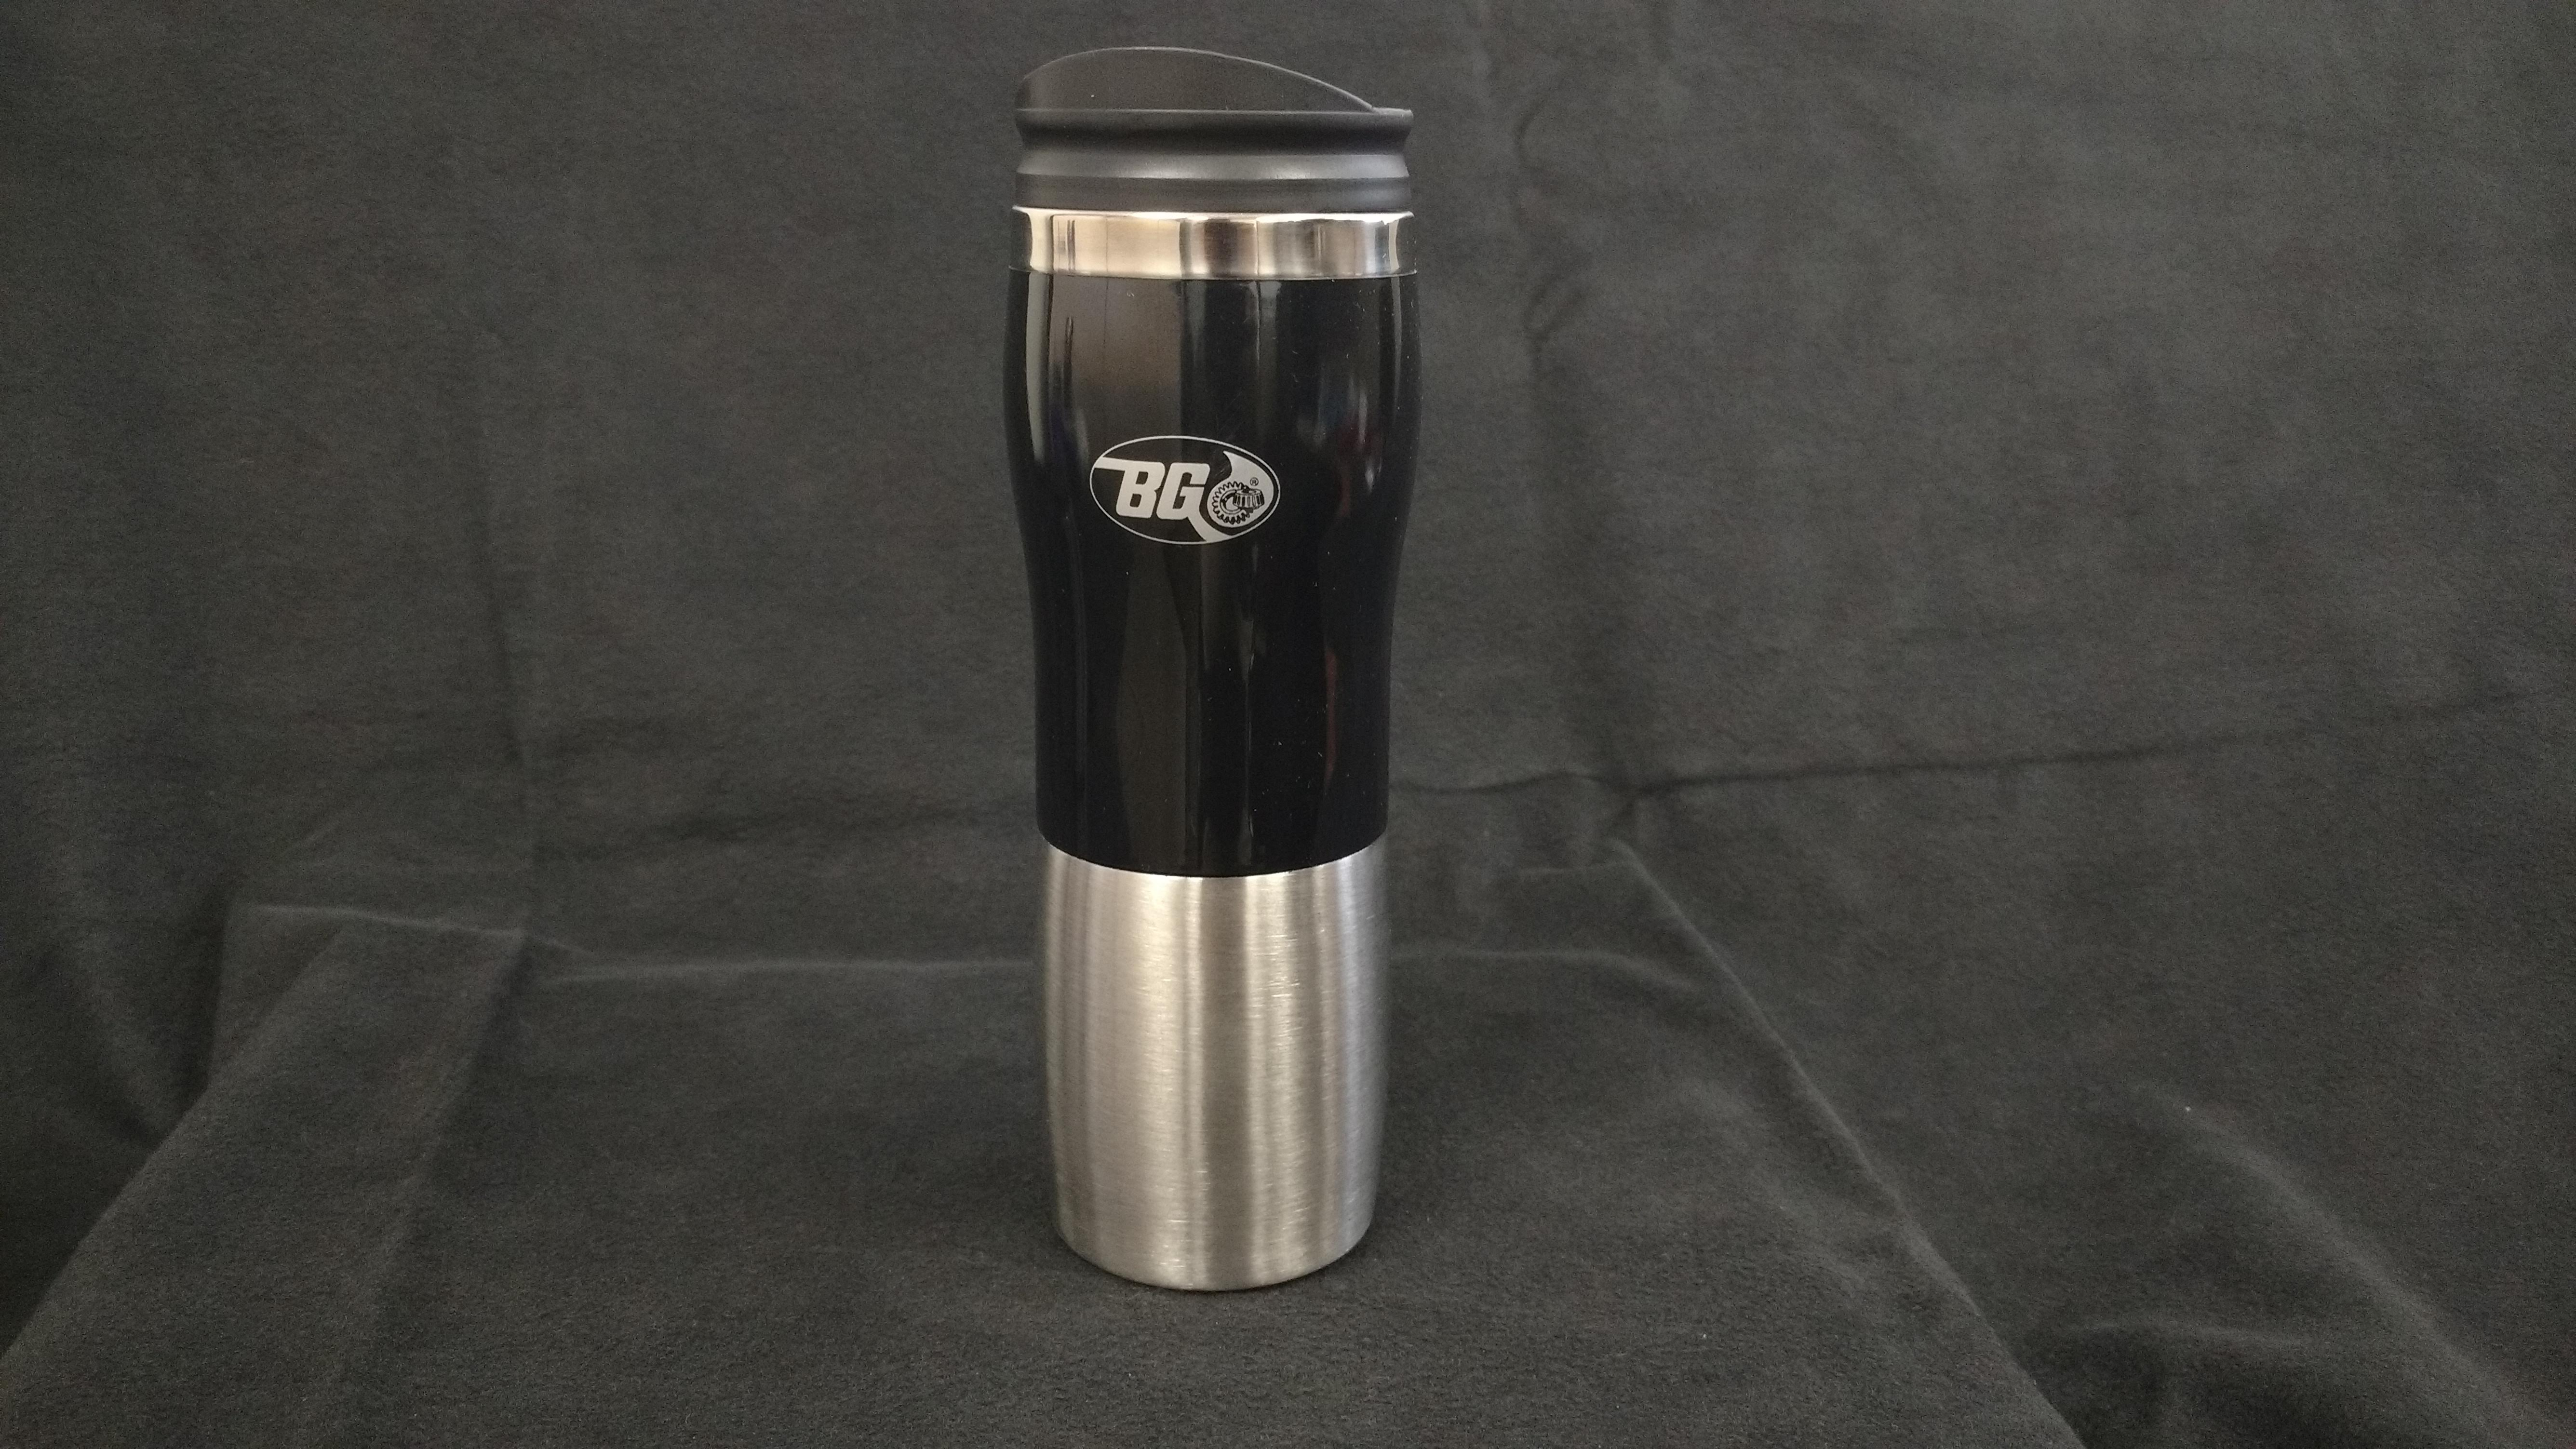 BG Products - Promotional Tumbler Coffee Mug